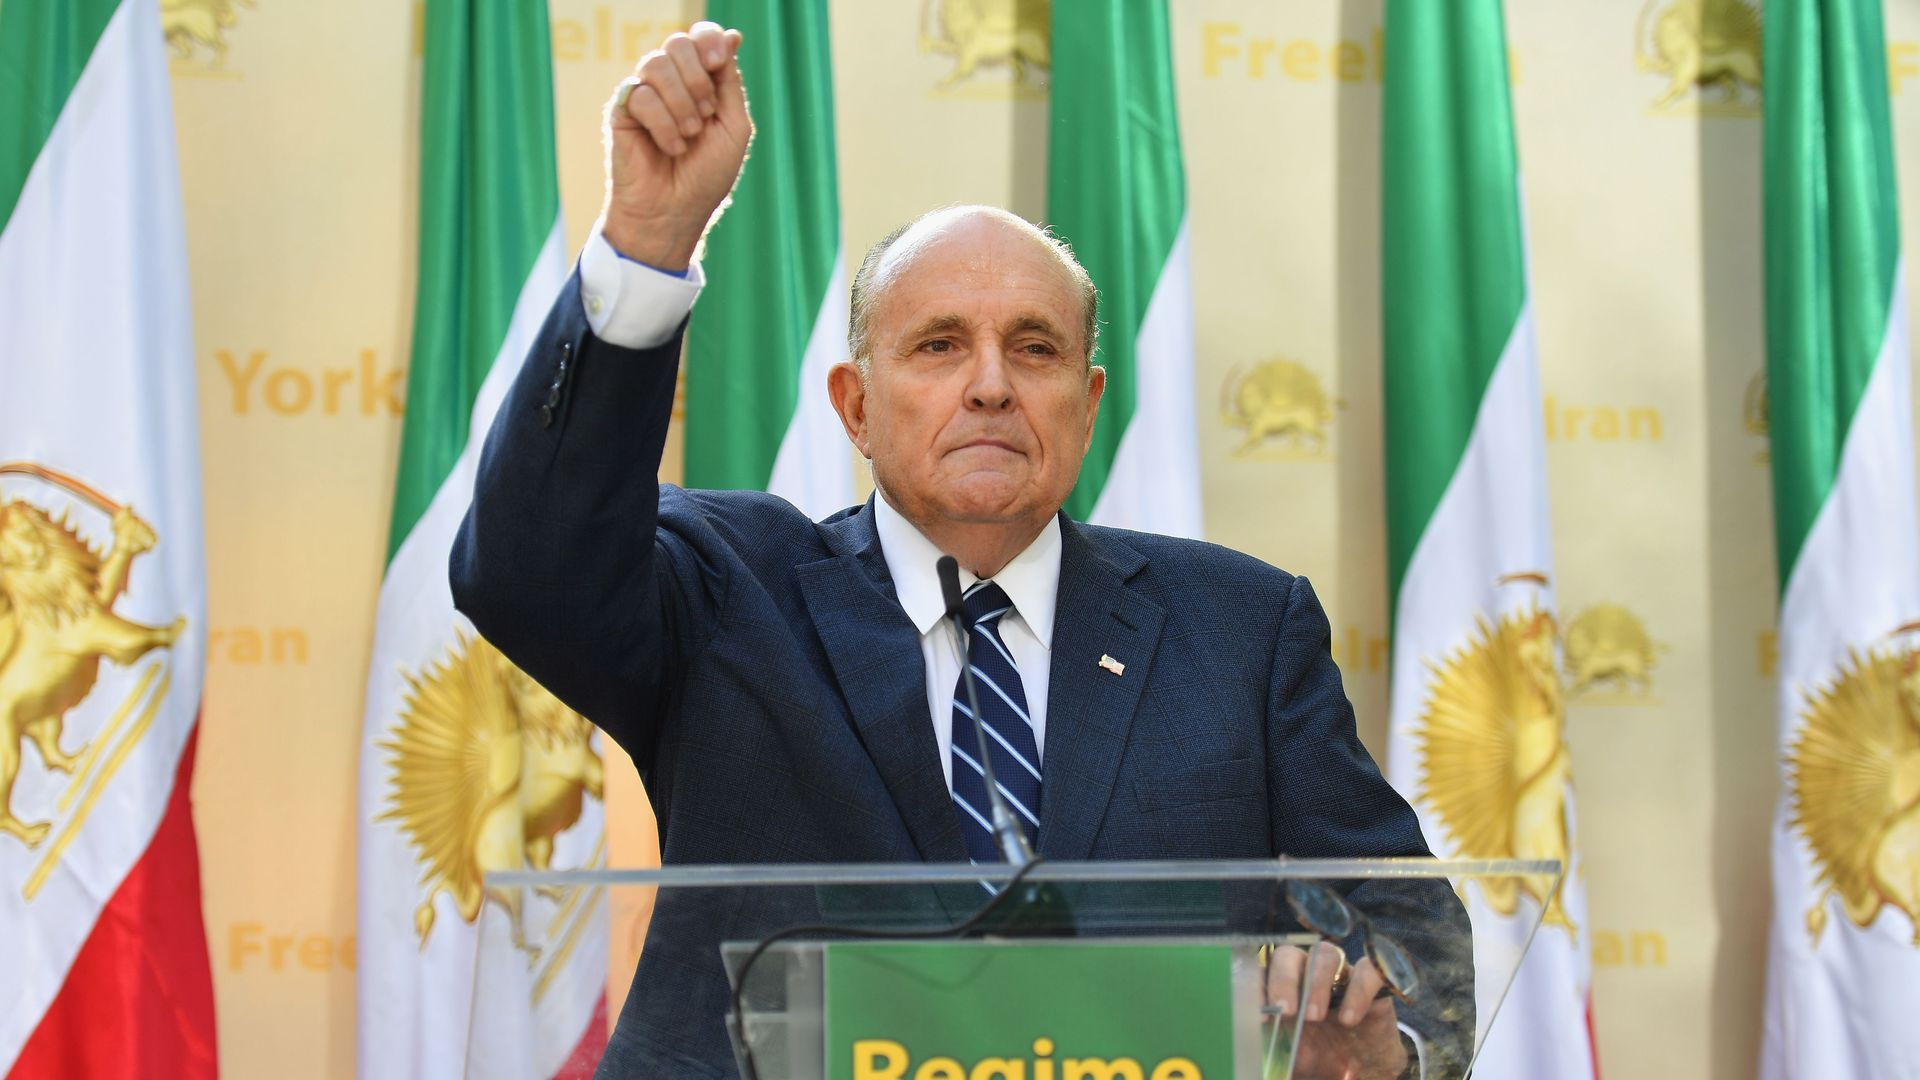 Rudy Giuliani, Former Mayor of New York City speaks to the Organization of Iranian American Communities outside the United Nations Headquarters in New York on September 24